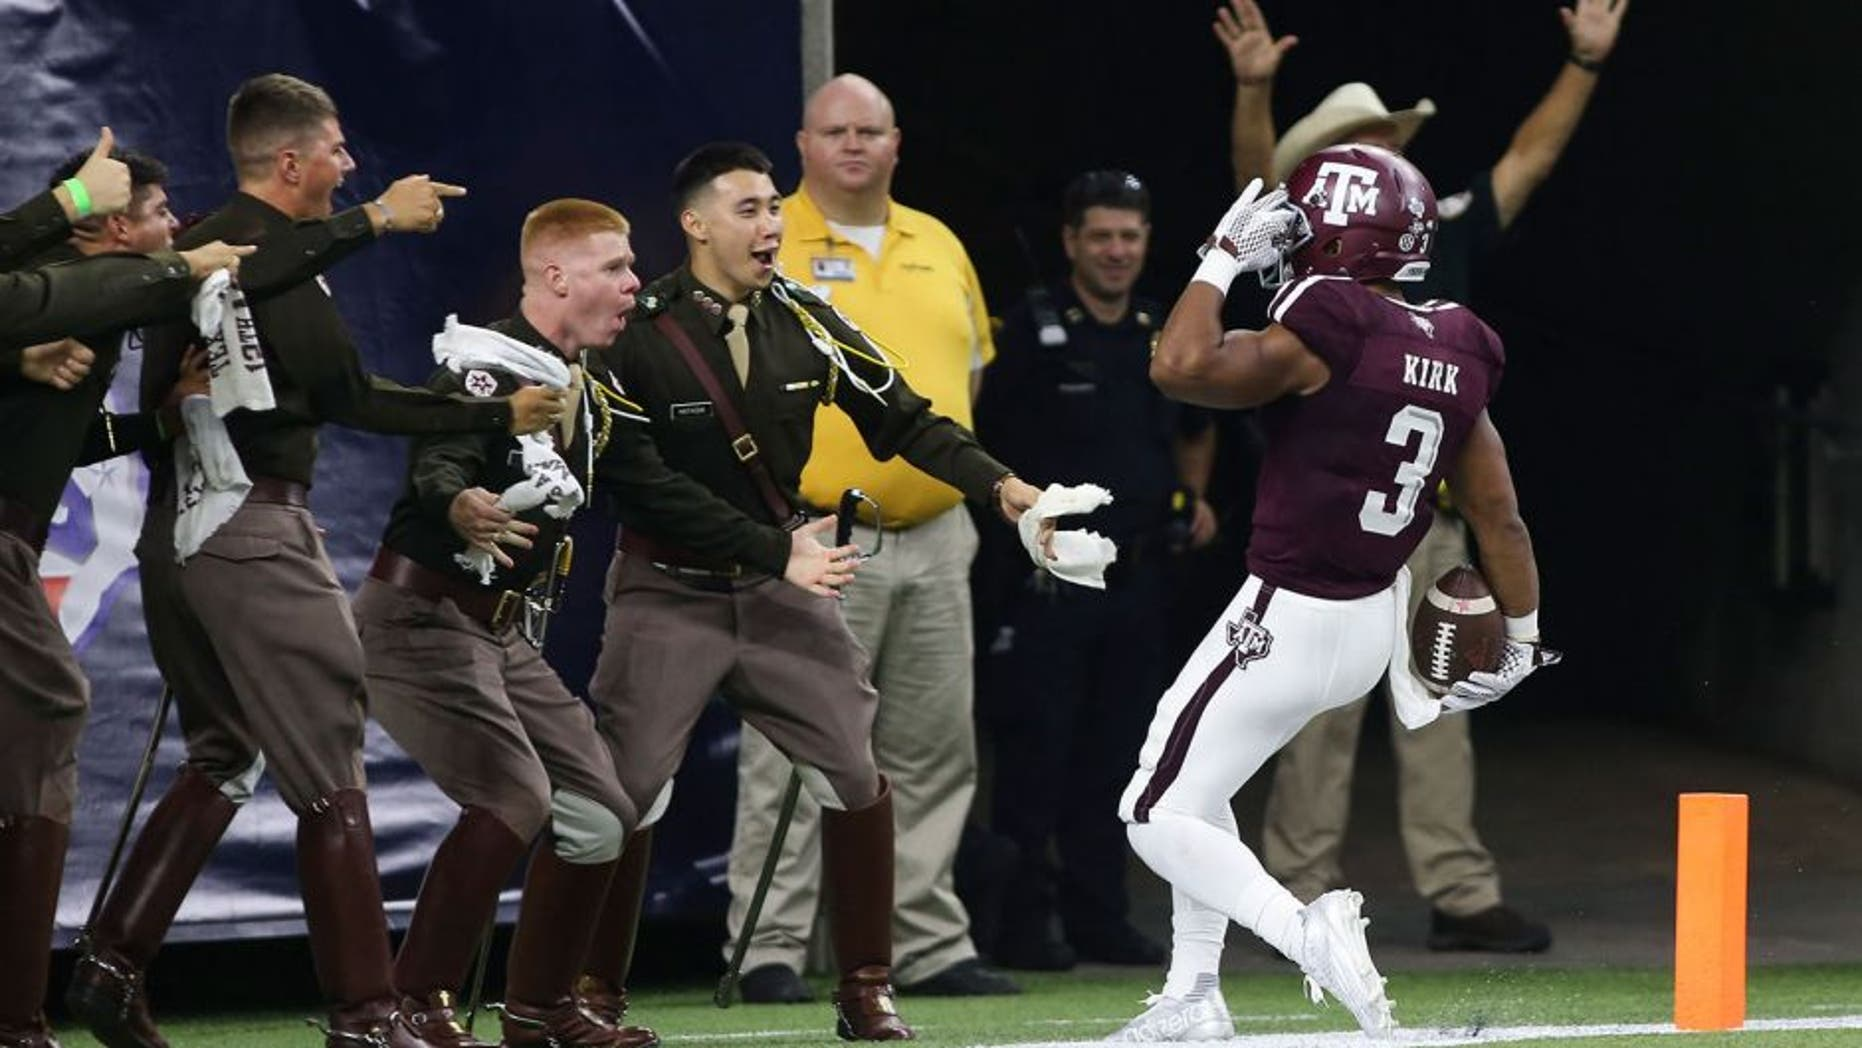 Sep 5, 2015; Houston, TX, USA; Texas A&M Aggies wide receiver Christian Kirk (3) salutes after returning a punt for a touchdown during the second quarter against the Arizona State Sun Devils at NRG Stadium. Mandatory Credit: Troy Taormina-USA TODAY Sports